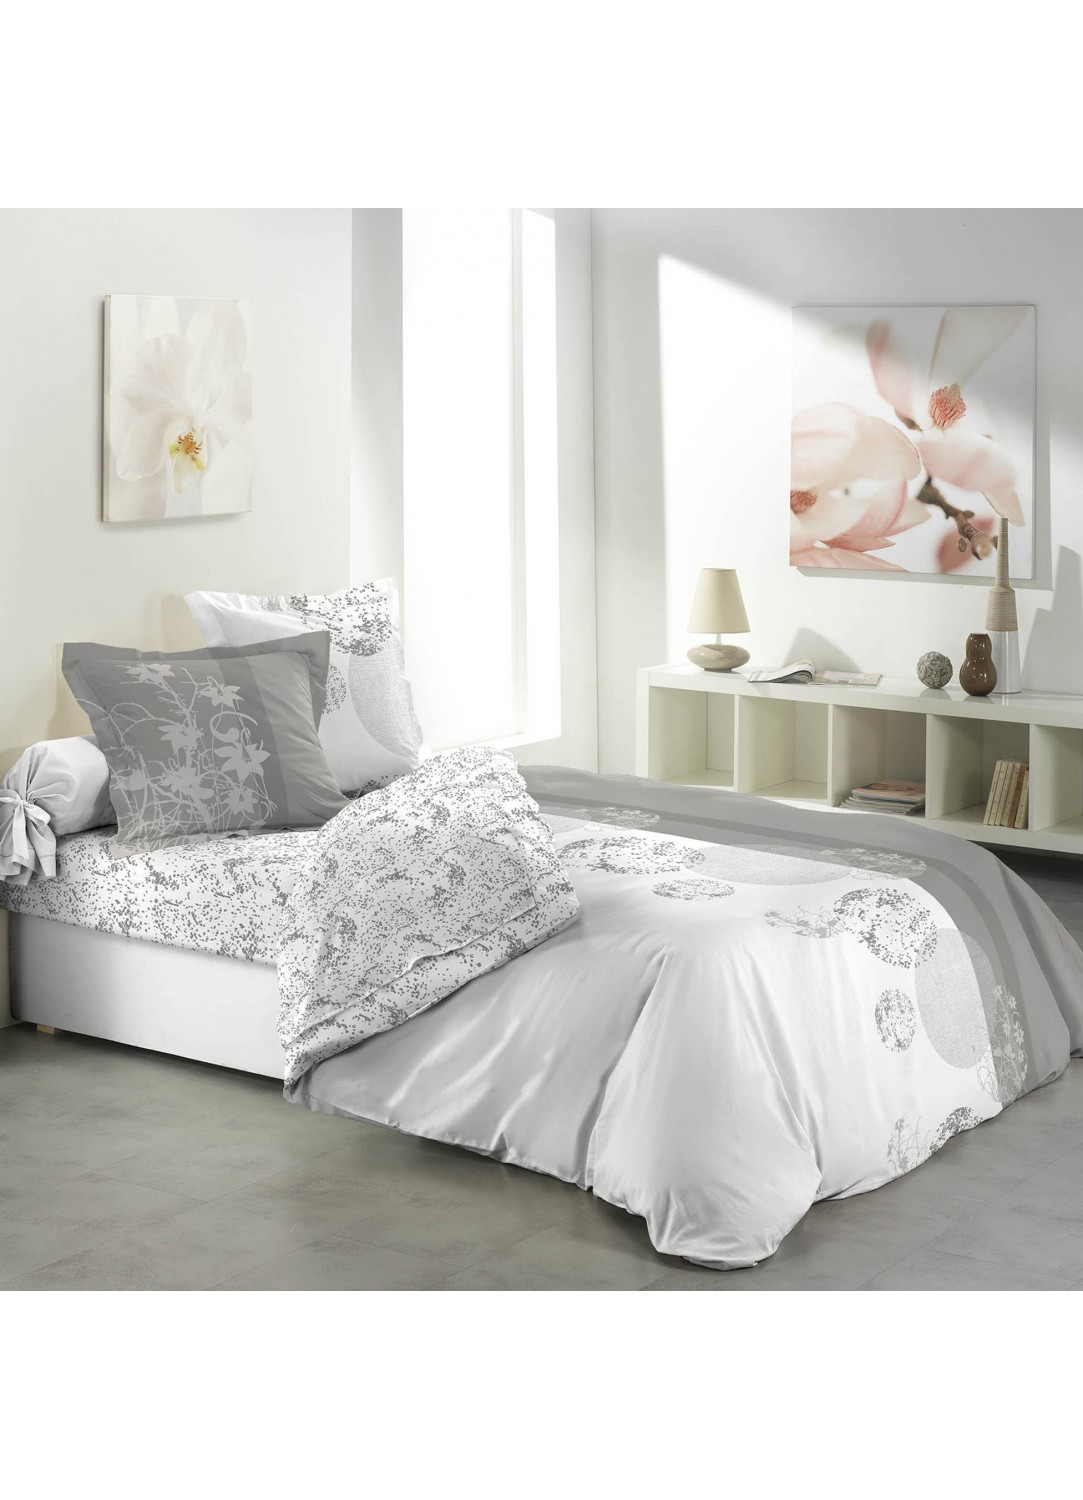 parure de lit 4 pi ces imprim e avec drap plat bubbles blanc et gris homemaison vente. Black Bedroom Furniture Sets. Home Design Ideas